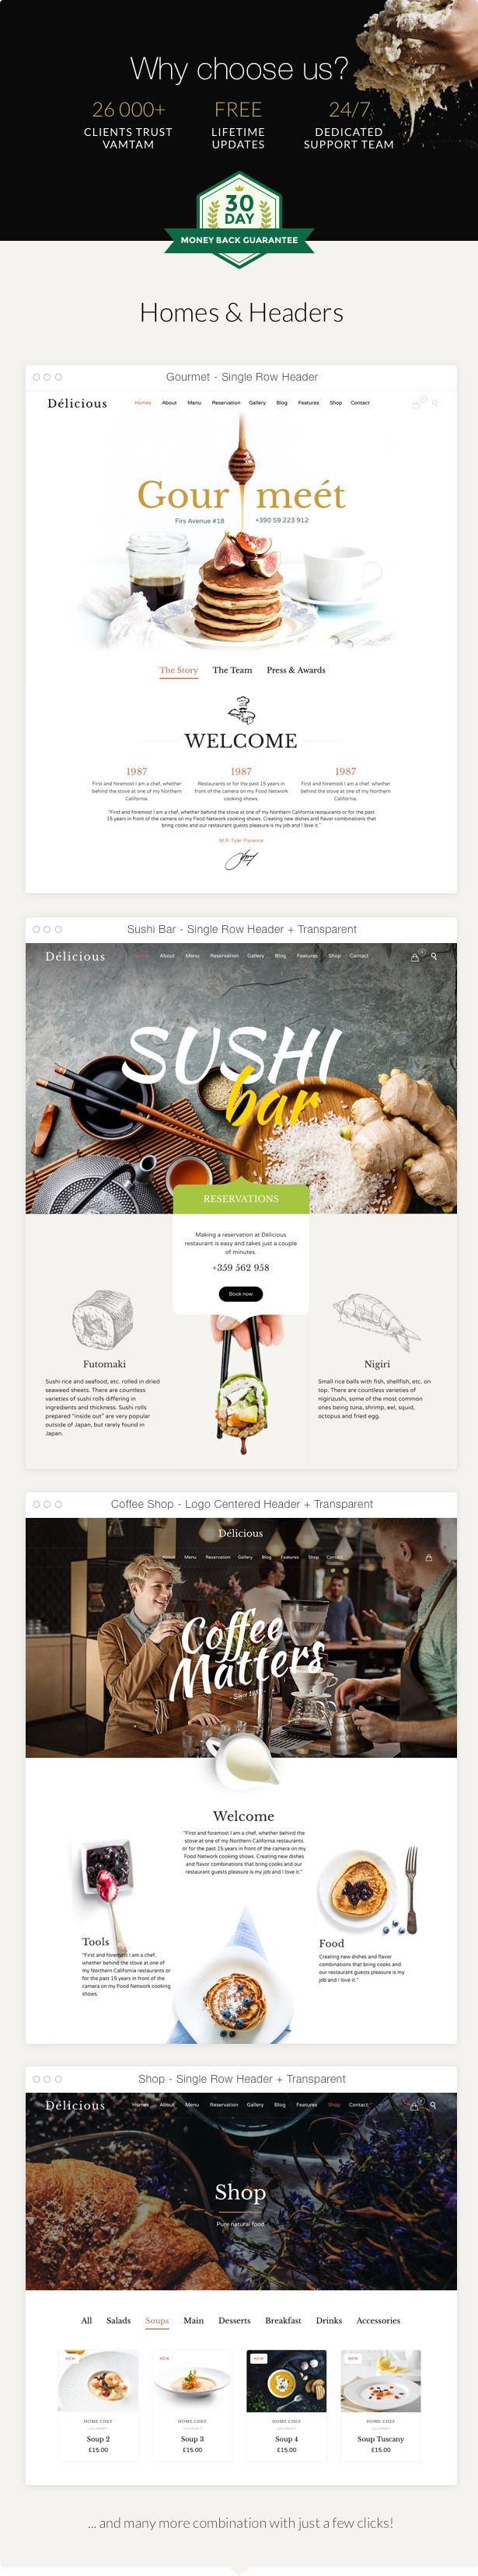 restaurant theme wordpress free different themes for restaurants restaurant theme ideas restaurant themes and concepts